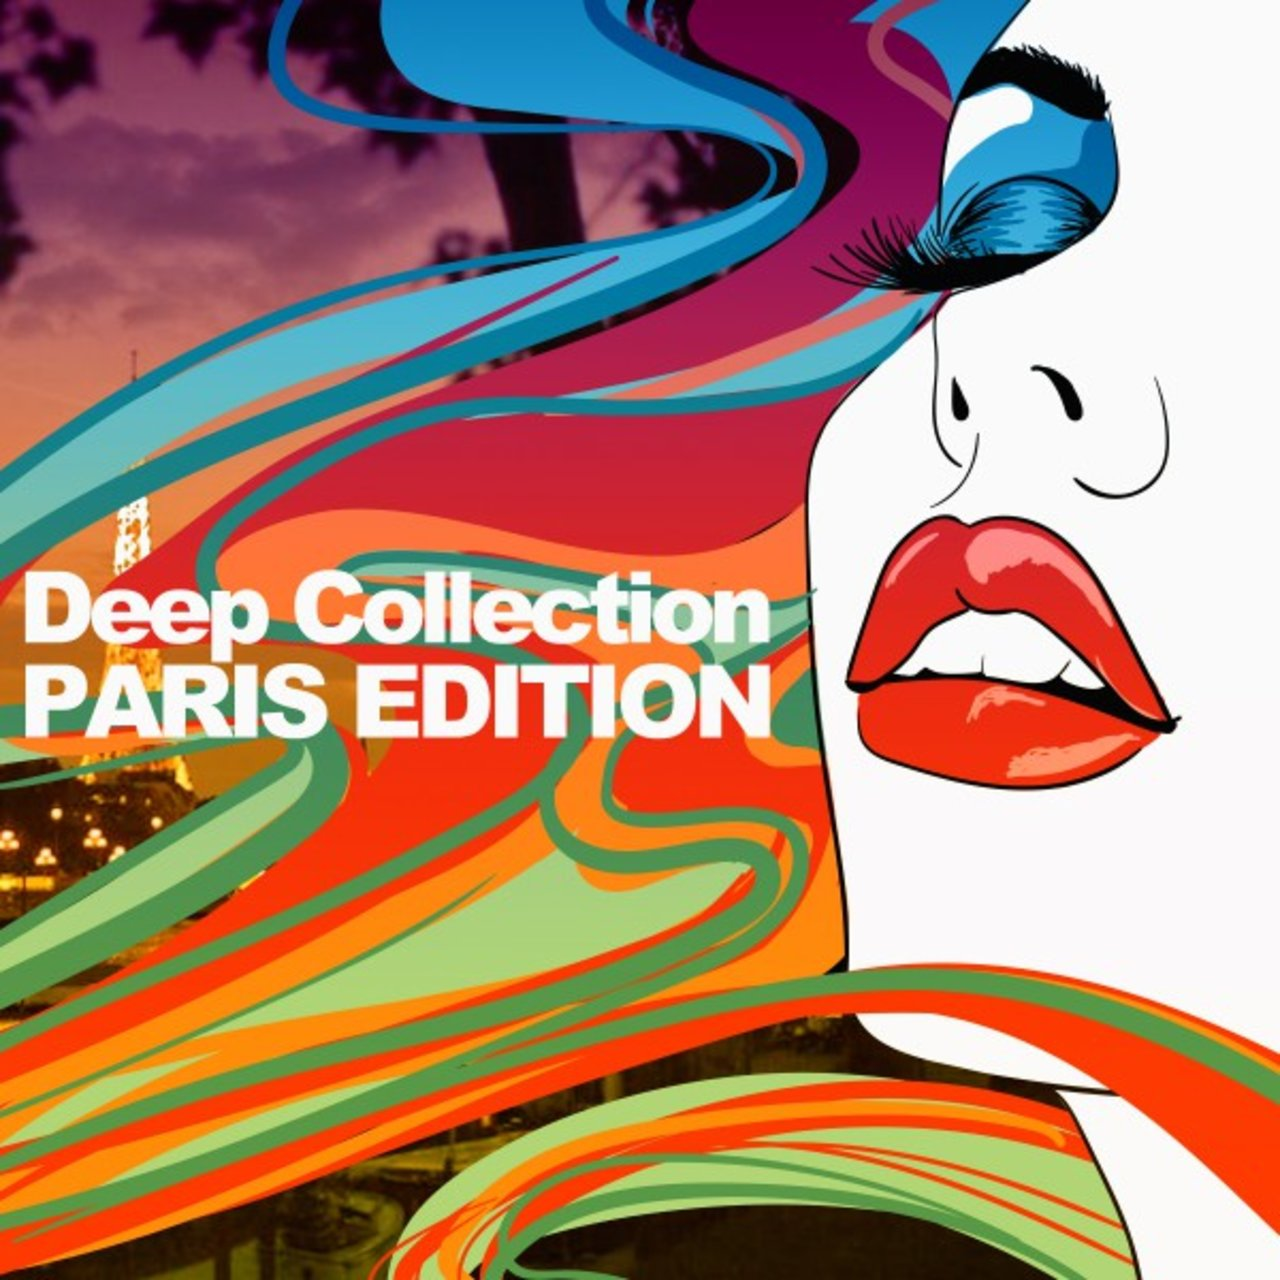 Deep Collection (Paris Edition)